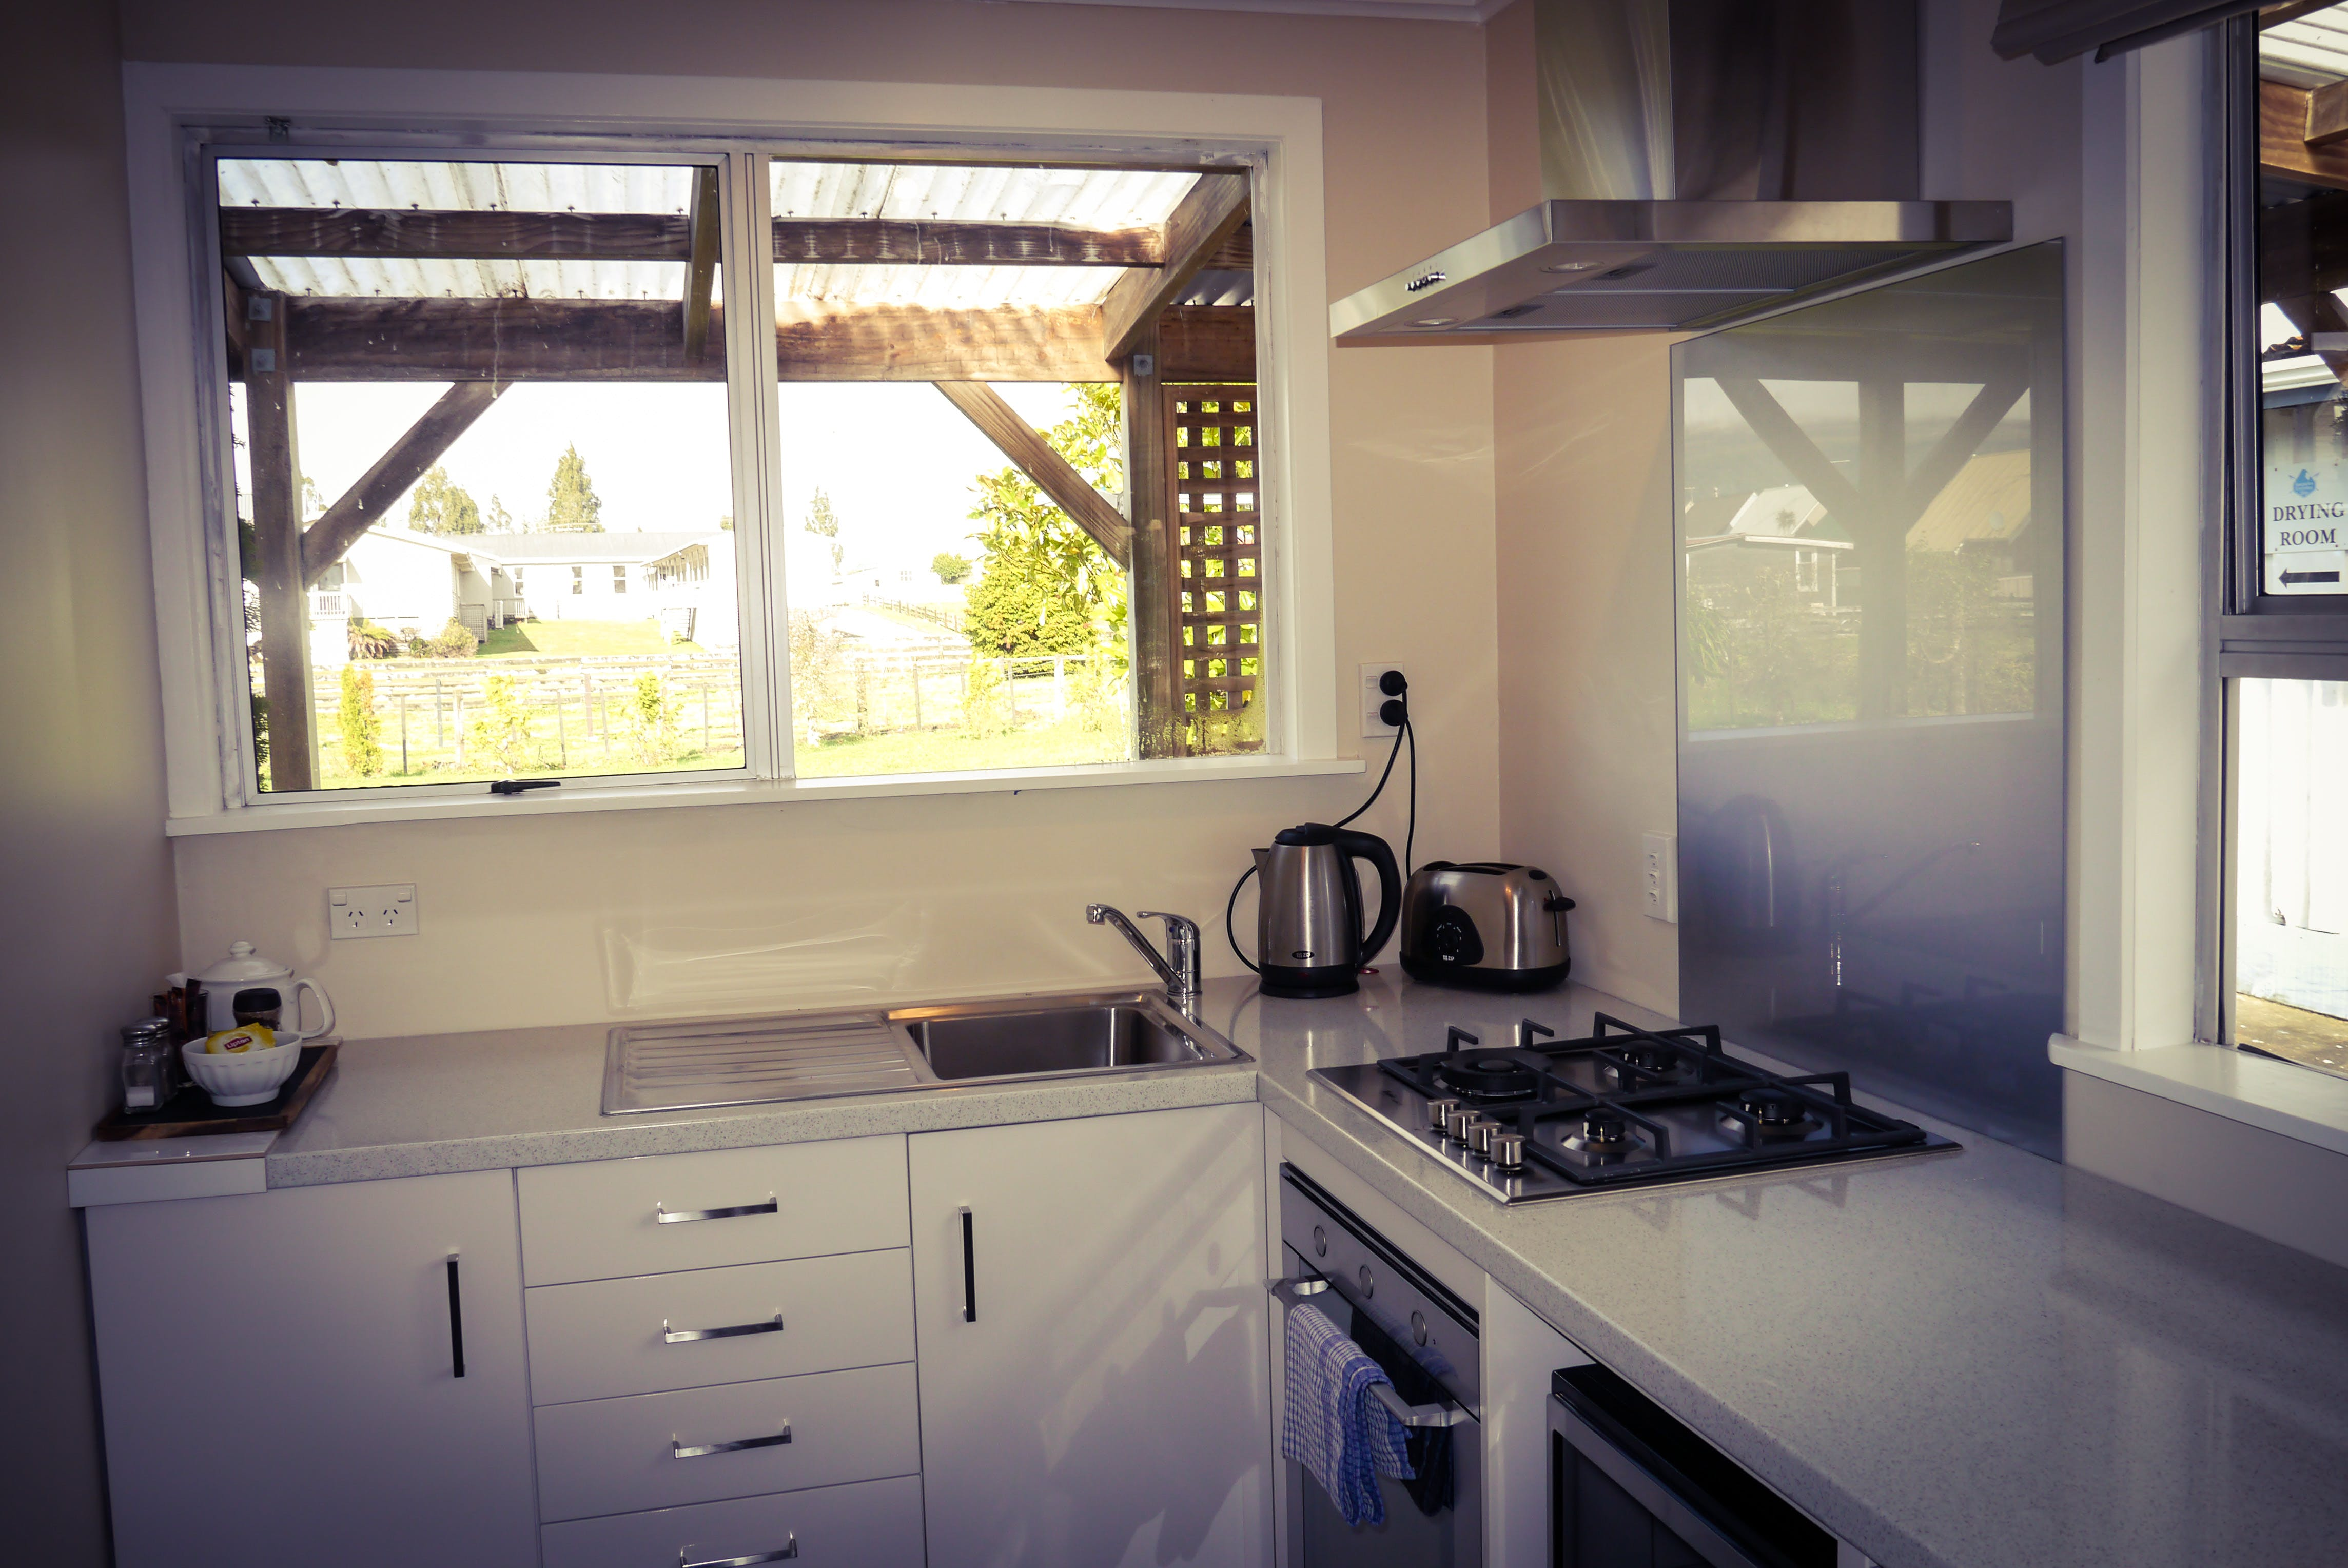 Horopito suite kitchen with kettle, toaster, gas hob and oven